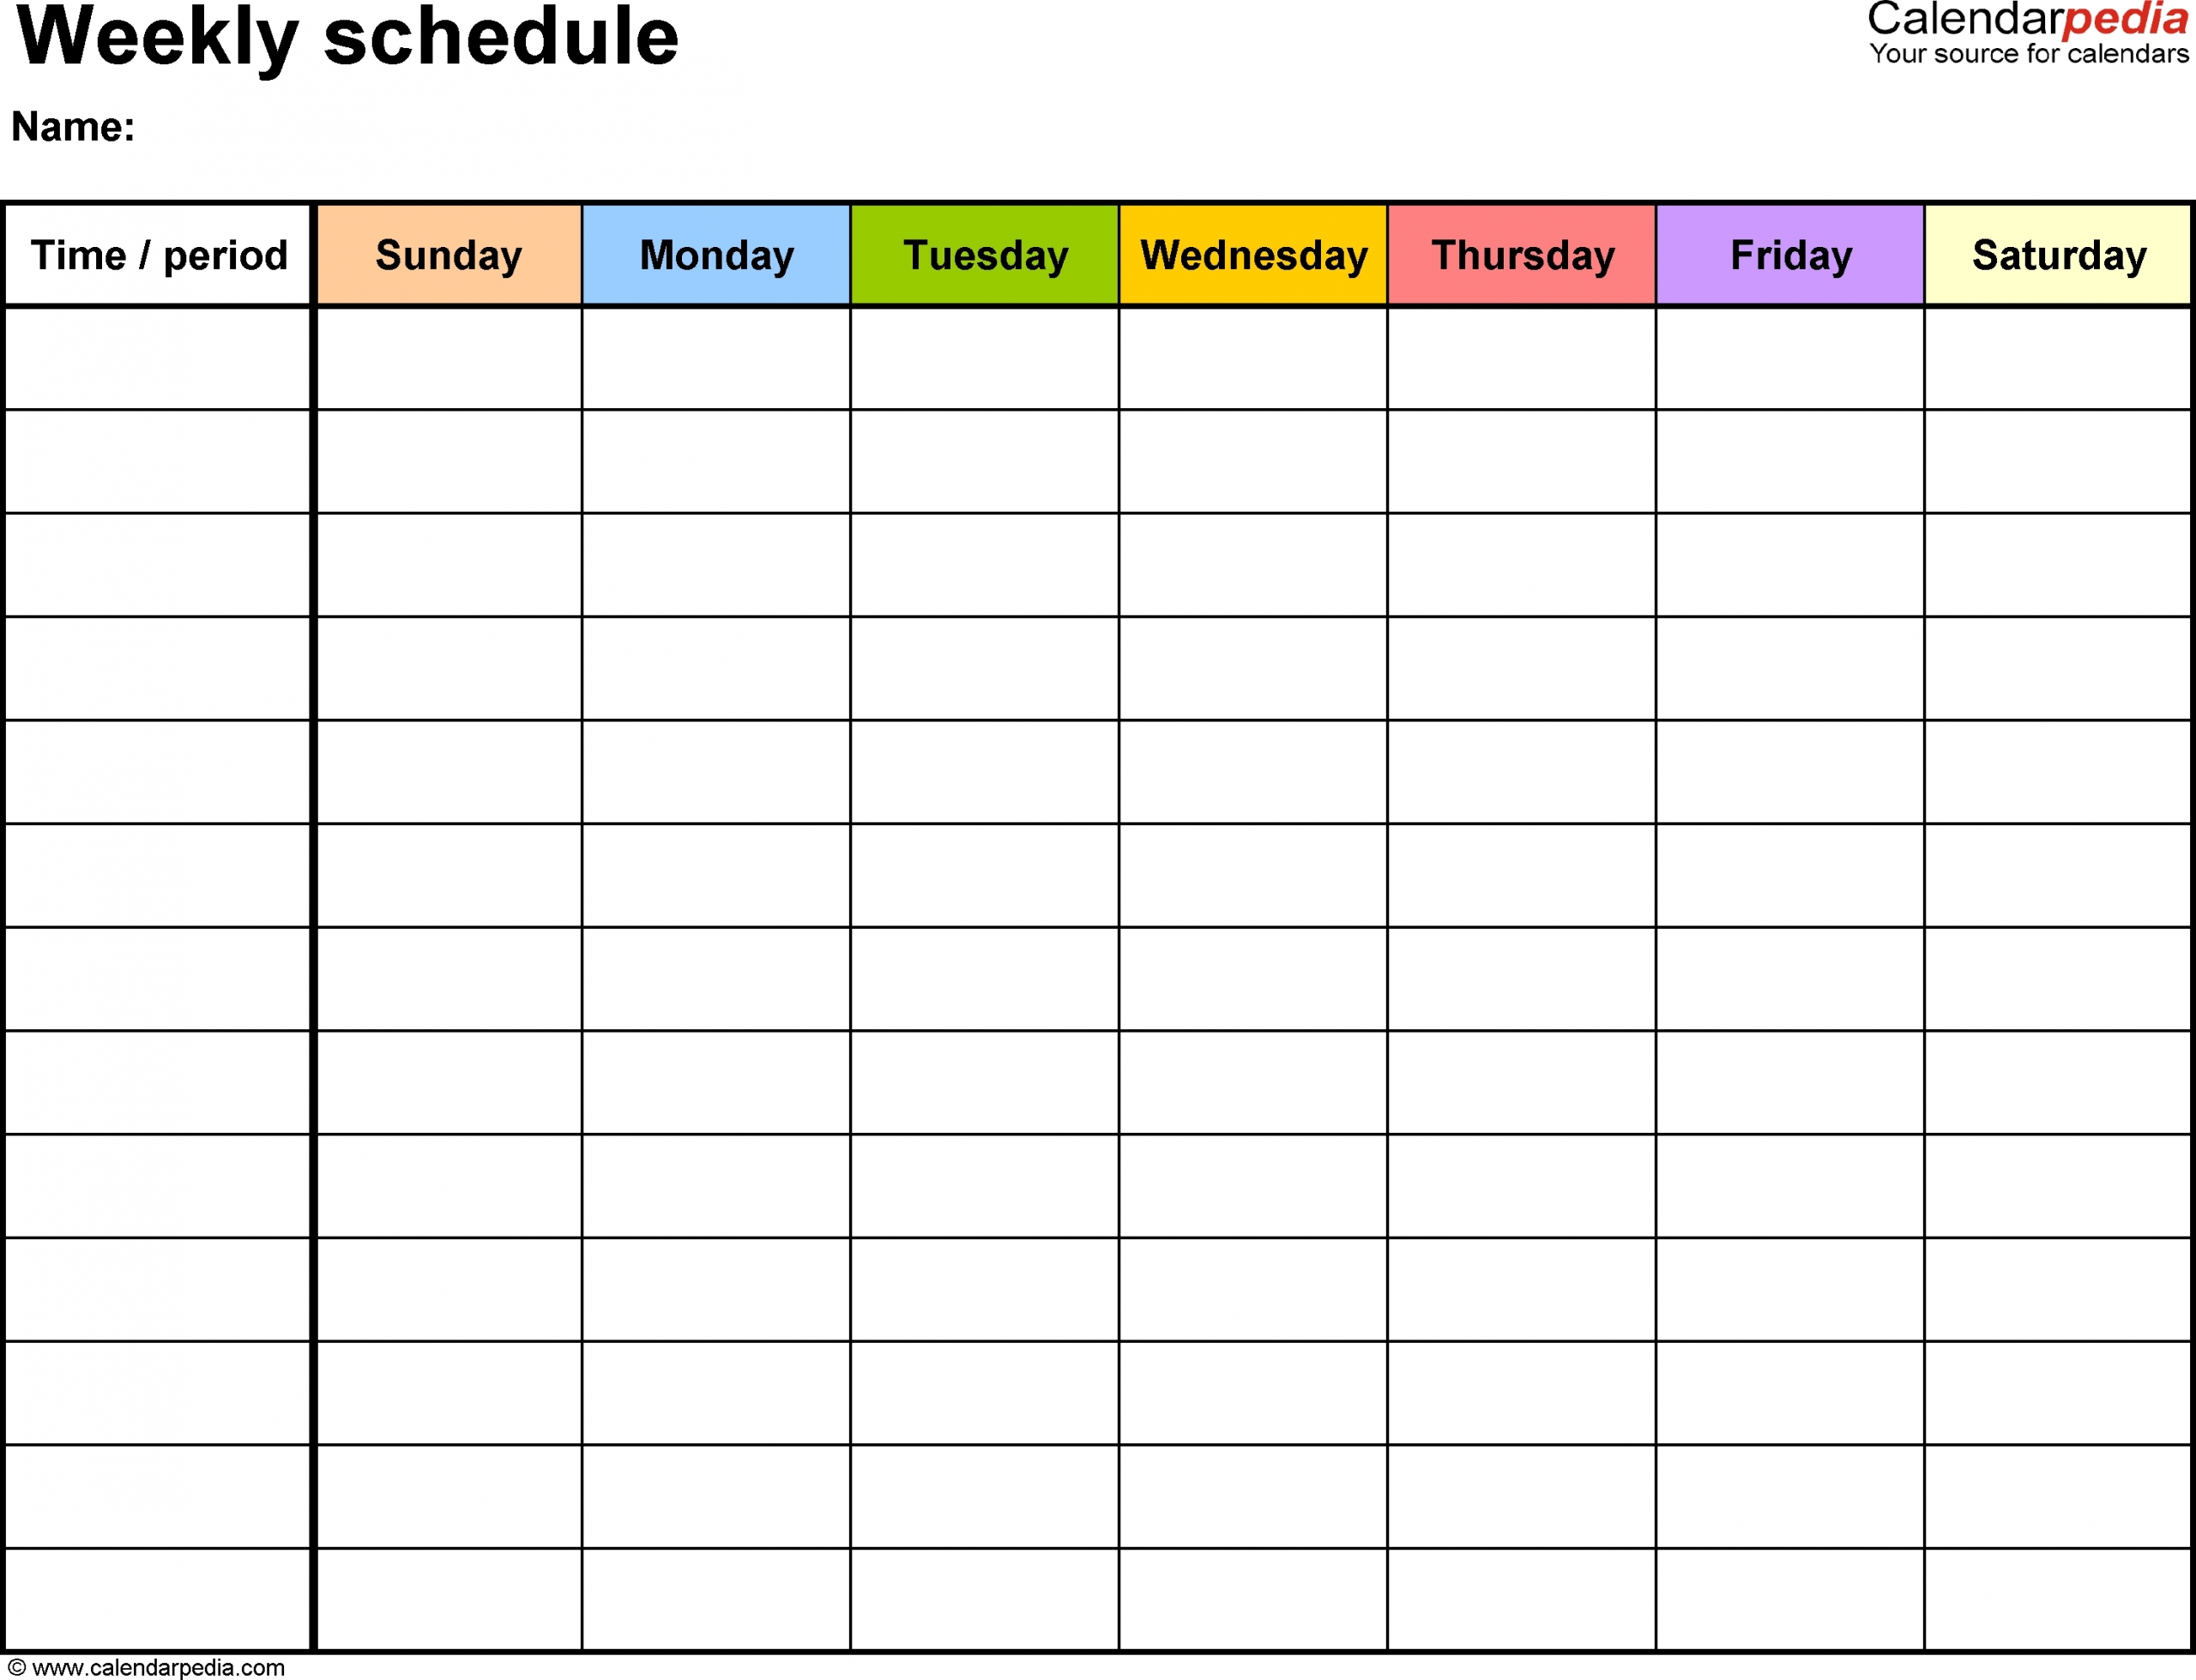 Free Printable Weekly Calendar Monday To Sunday | Month